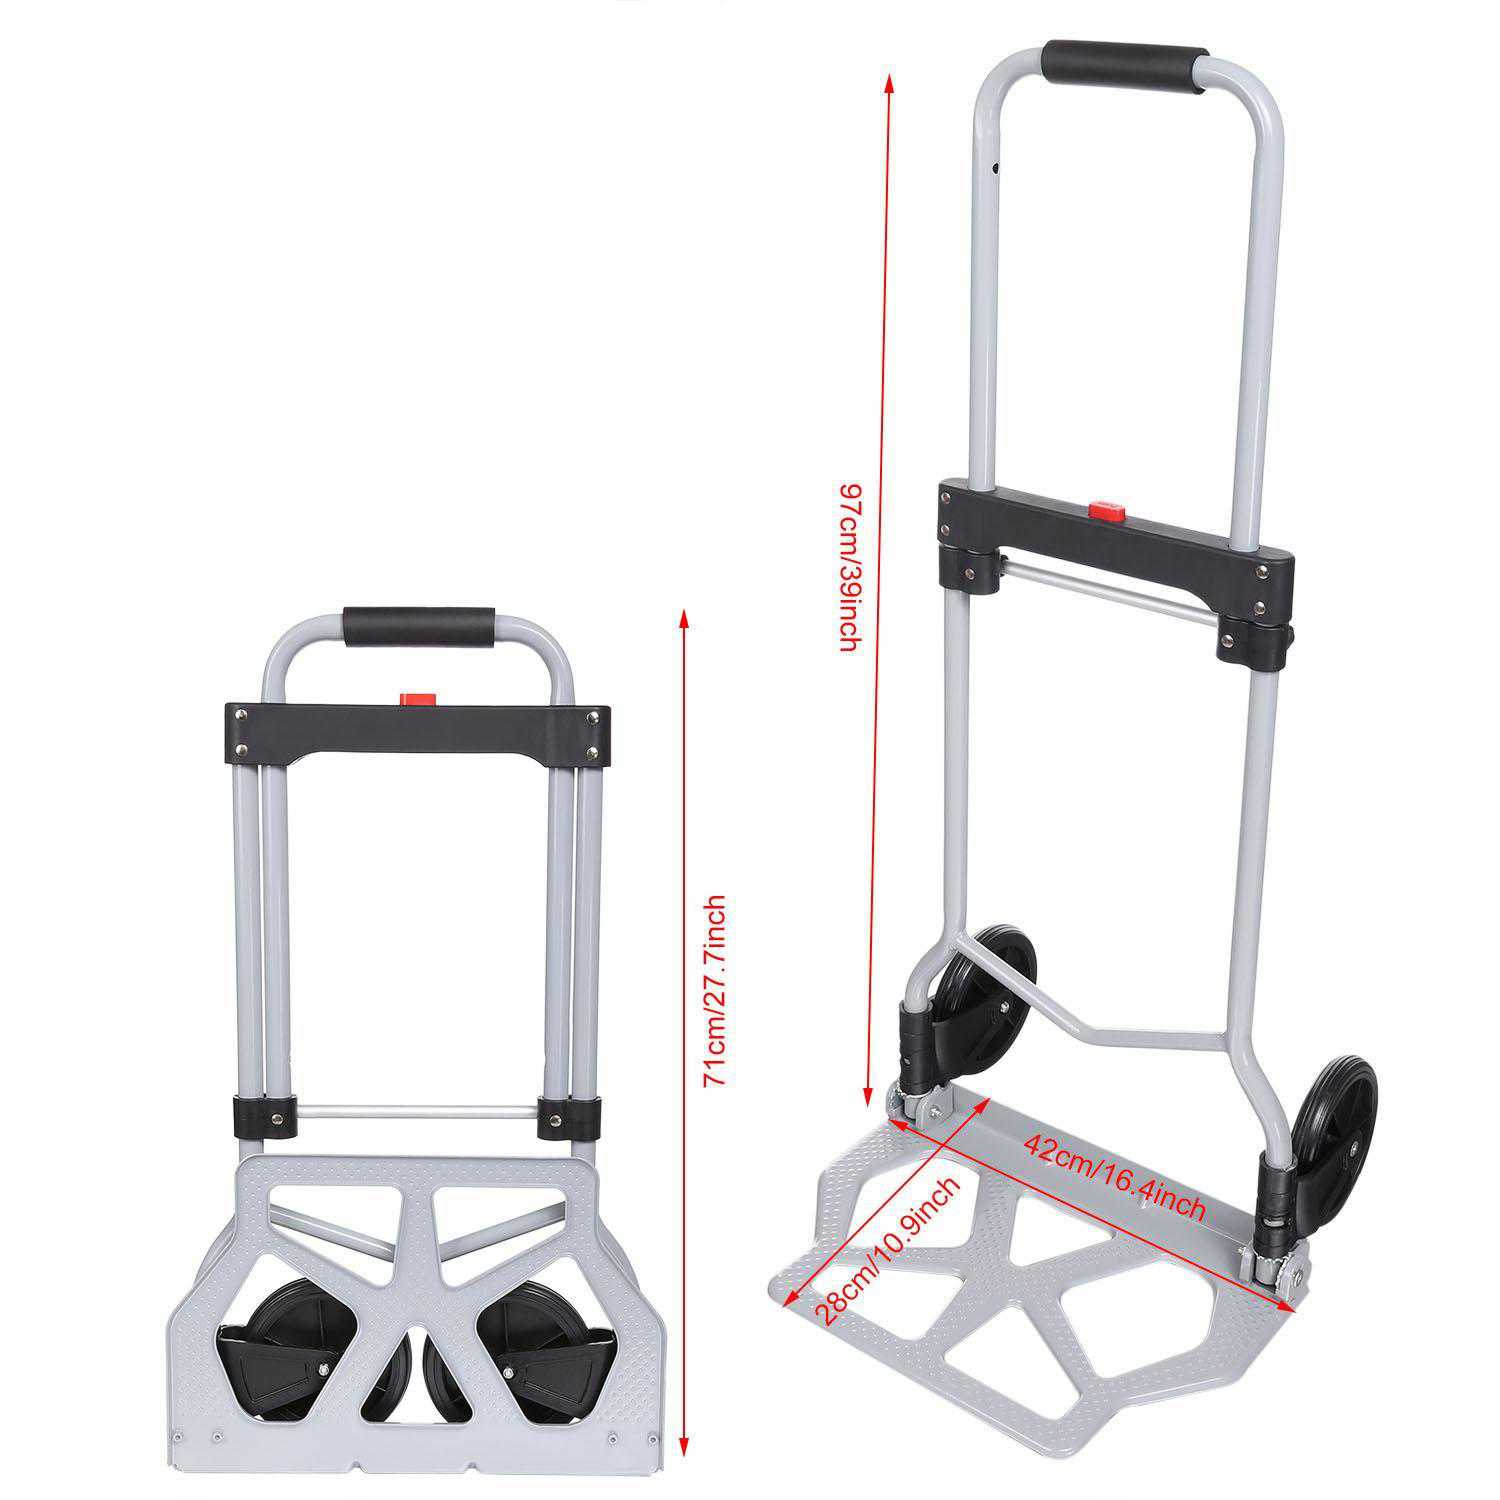 Portable Folding Hand Truck Dolly Luggage Carts, Silver, 220 lbs Capacity, Industrial/Travel/Shopping BlETE